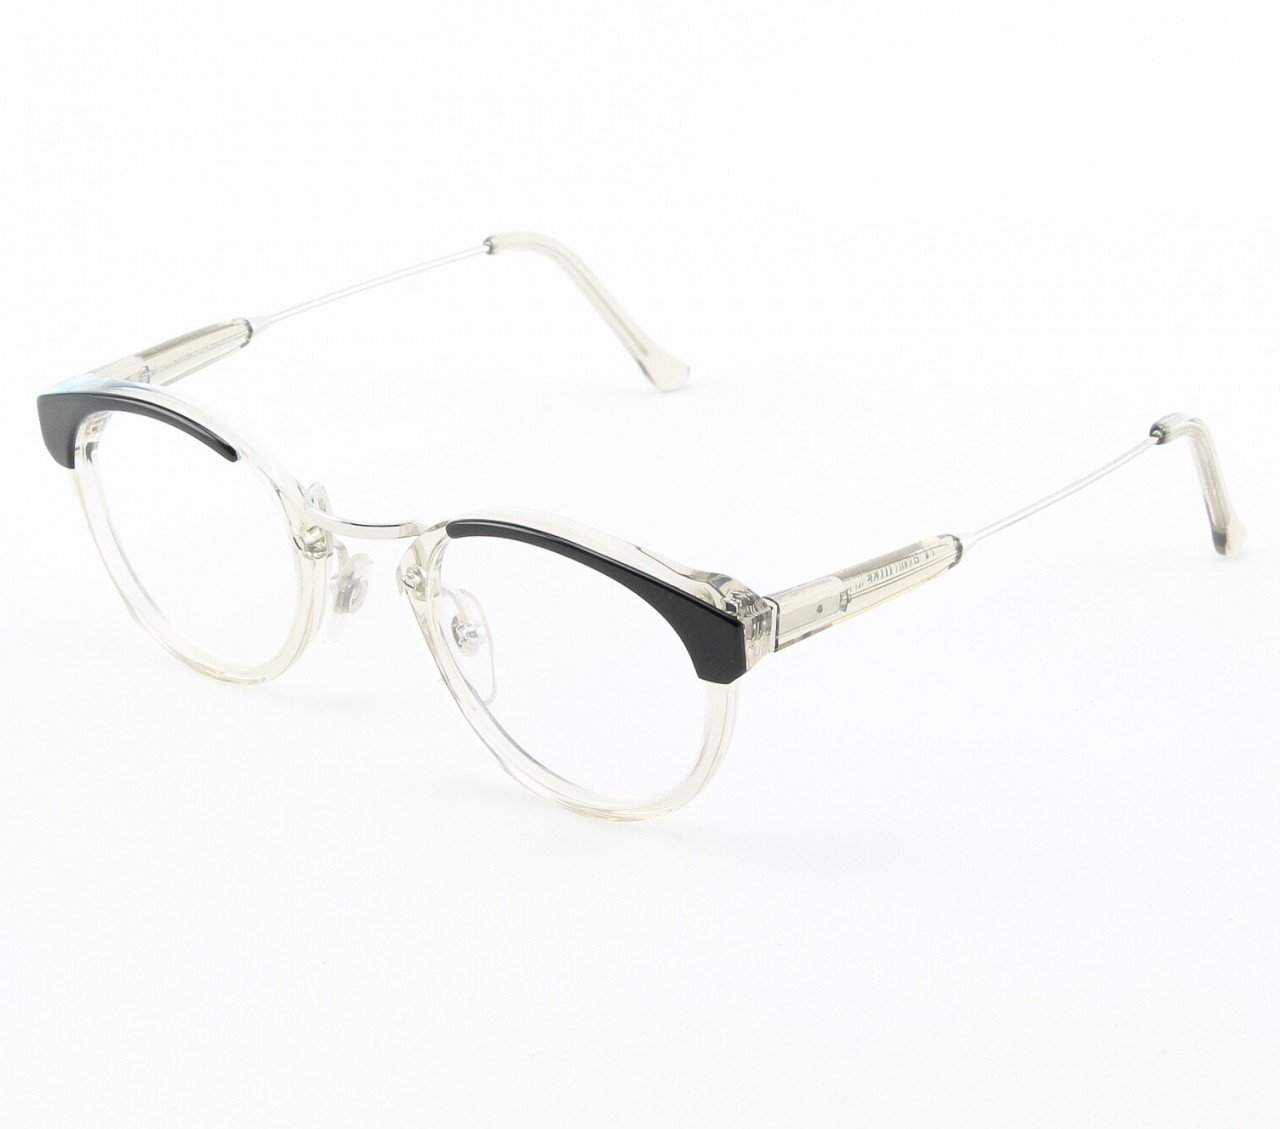 Super Panama 955/0A Eyeglasses Black Gray Crystal with Clear Zeiss Lenses by RETROSUPERFUTURE